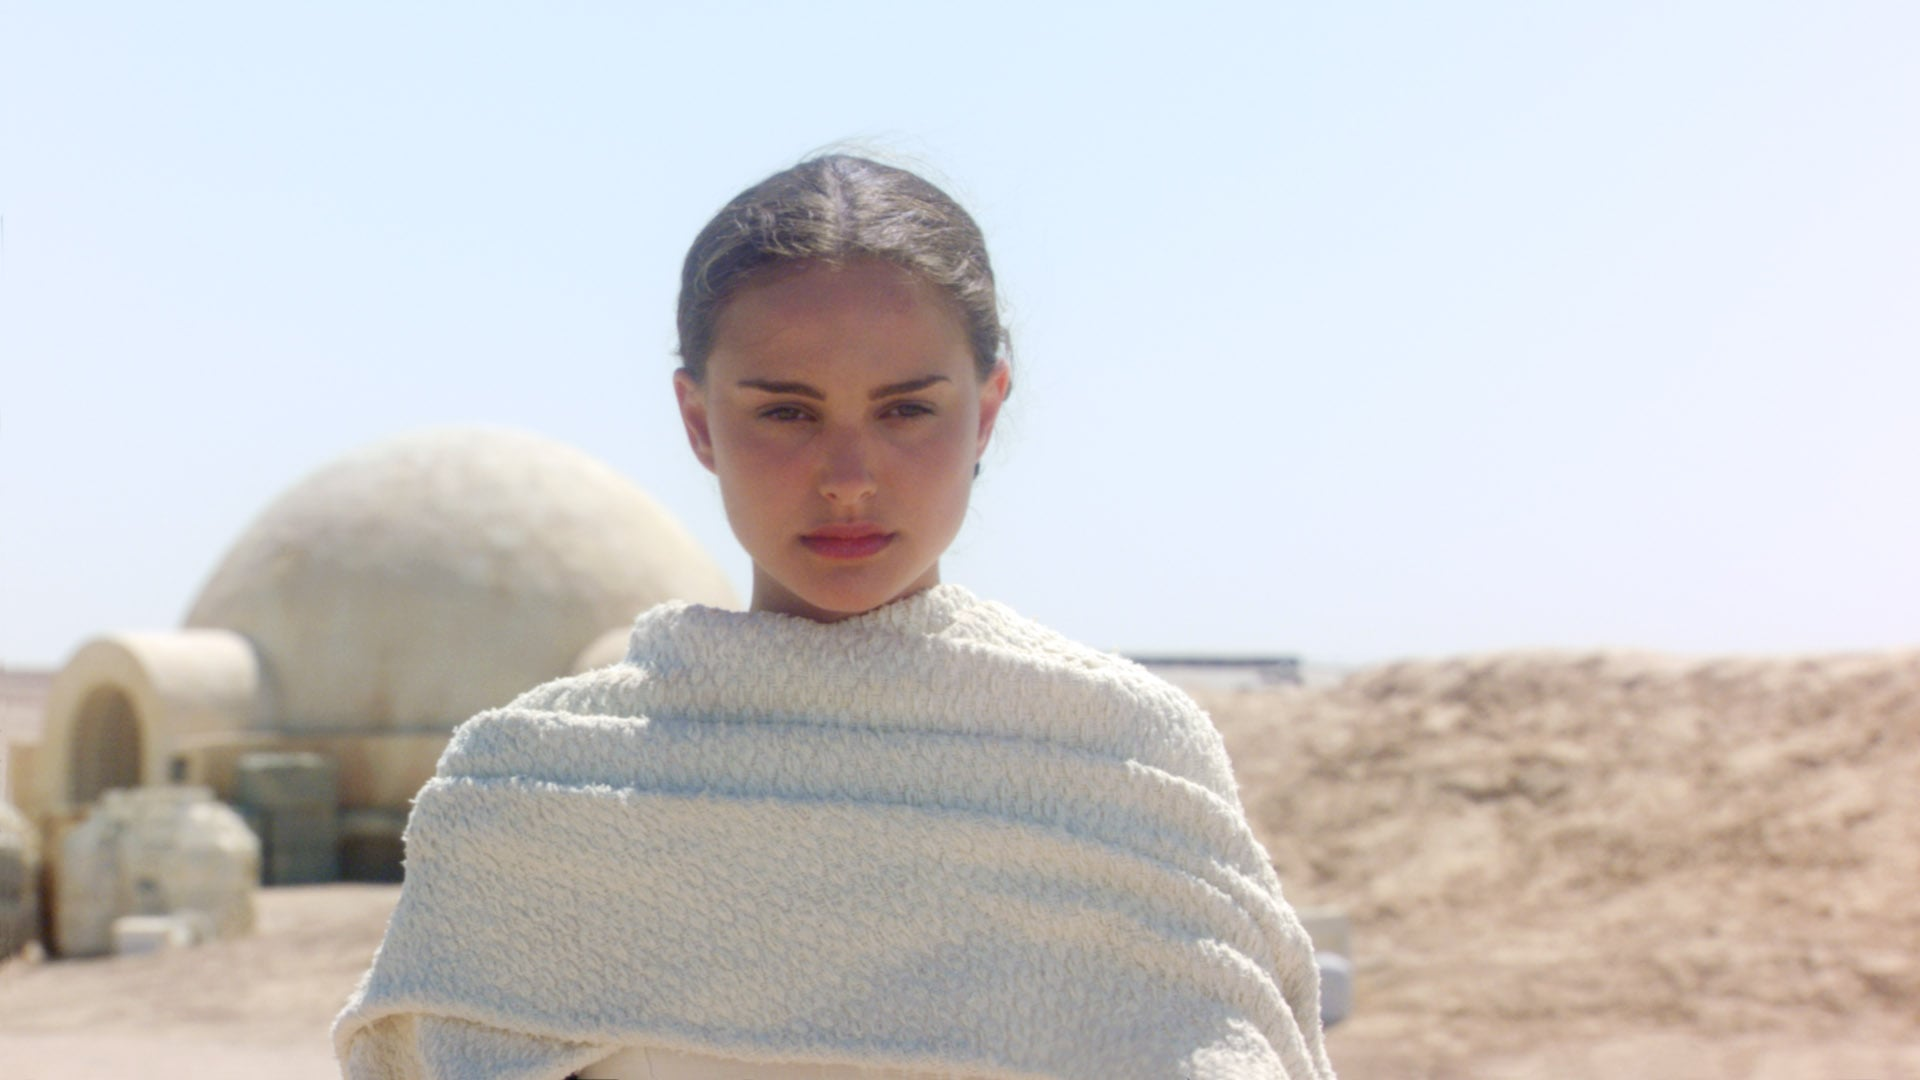 STAR WARS: EPISODE II-ATTACK OF THE CLONES, Natalie Portman, 2002. TM and copyright Twentieth Century-Fox Film Corporation. All rights reserved/Courtesy Everett Collection